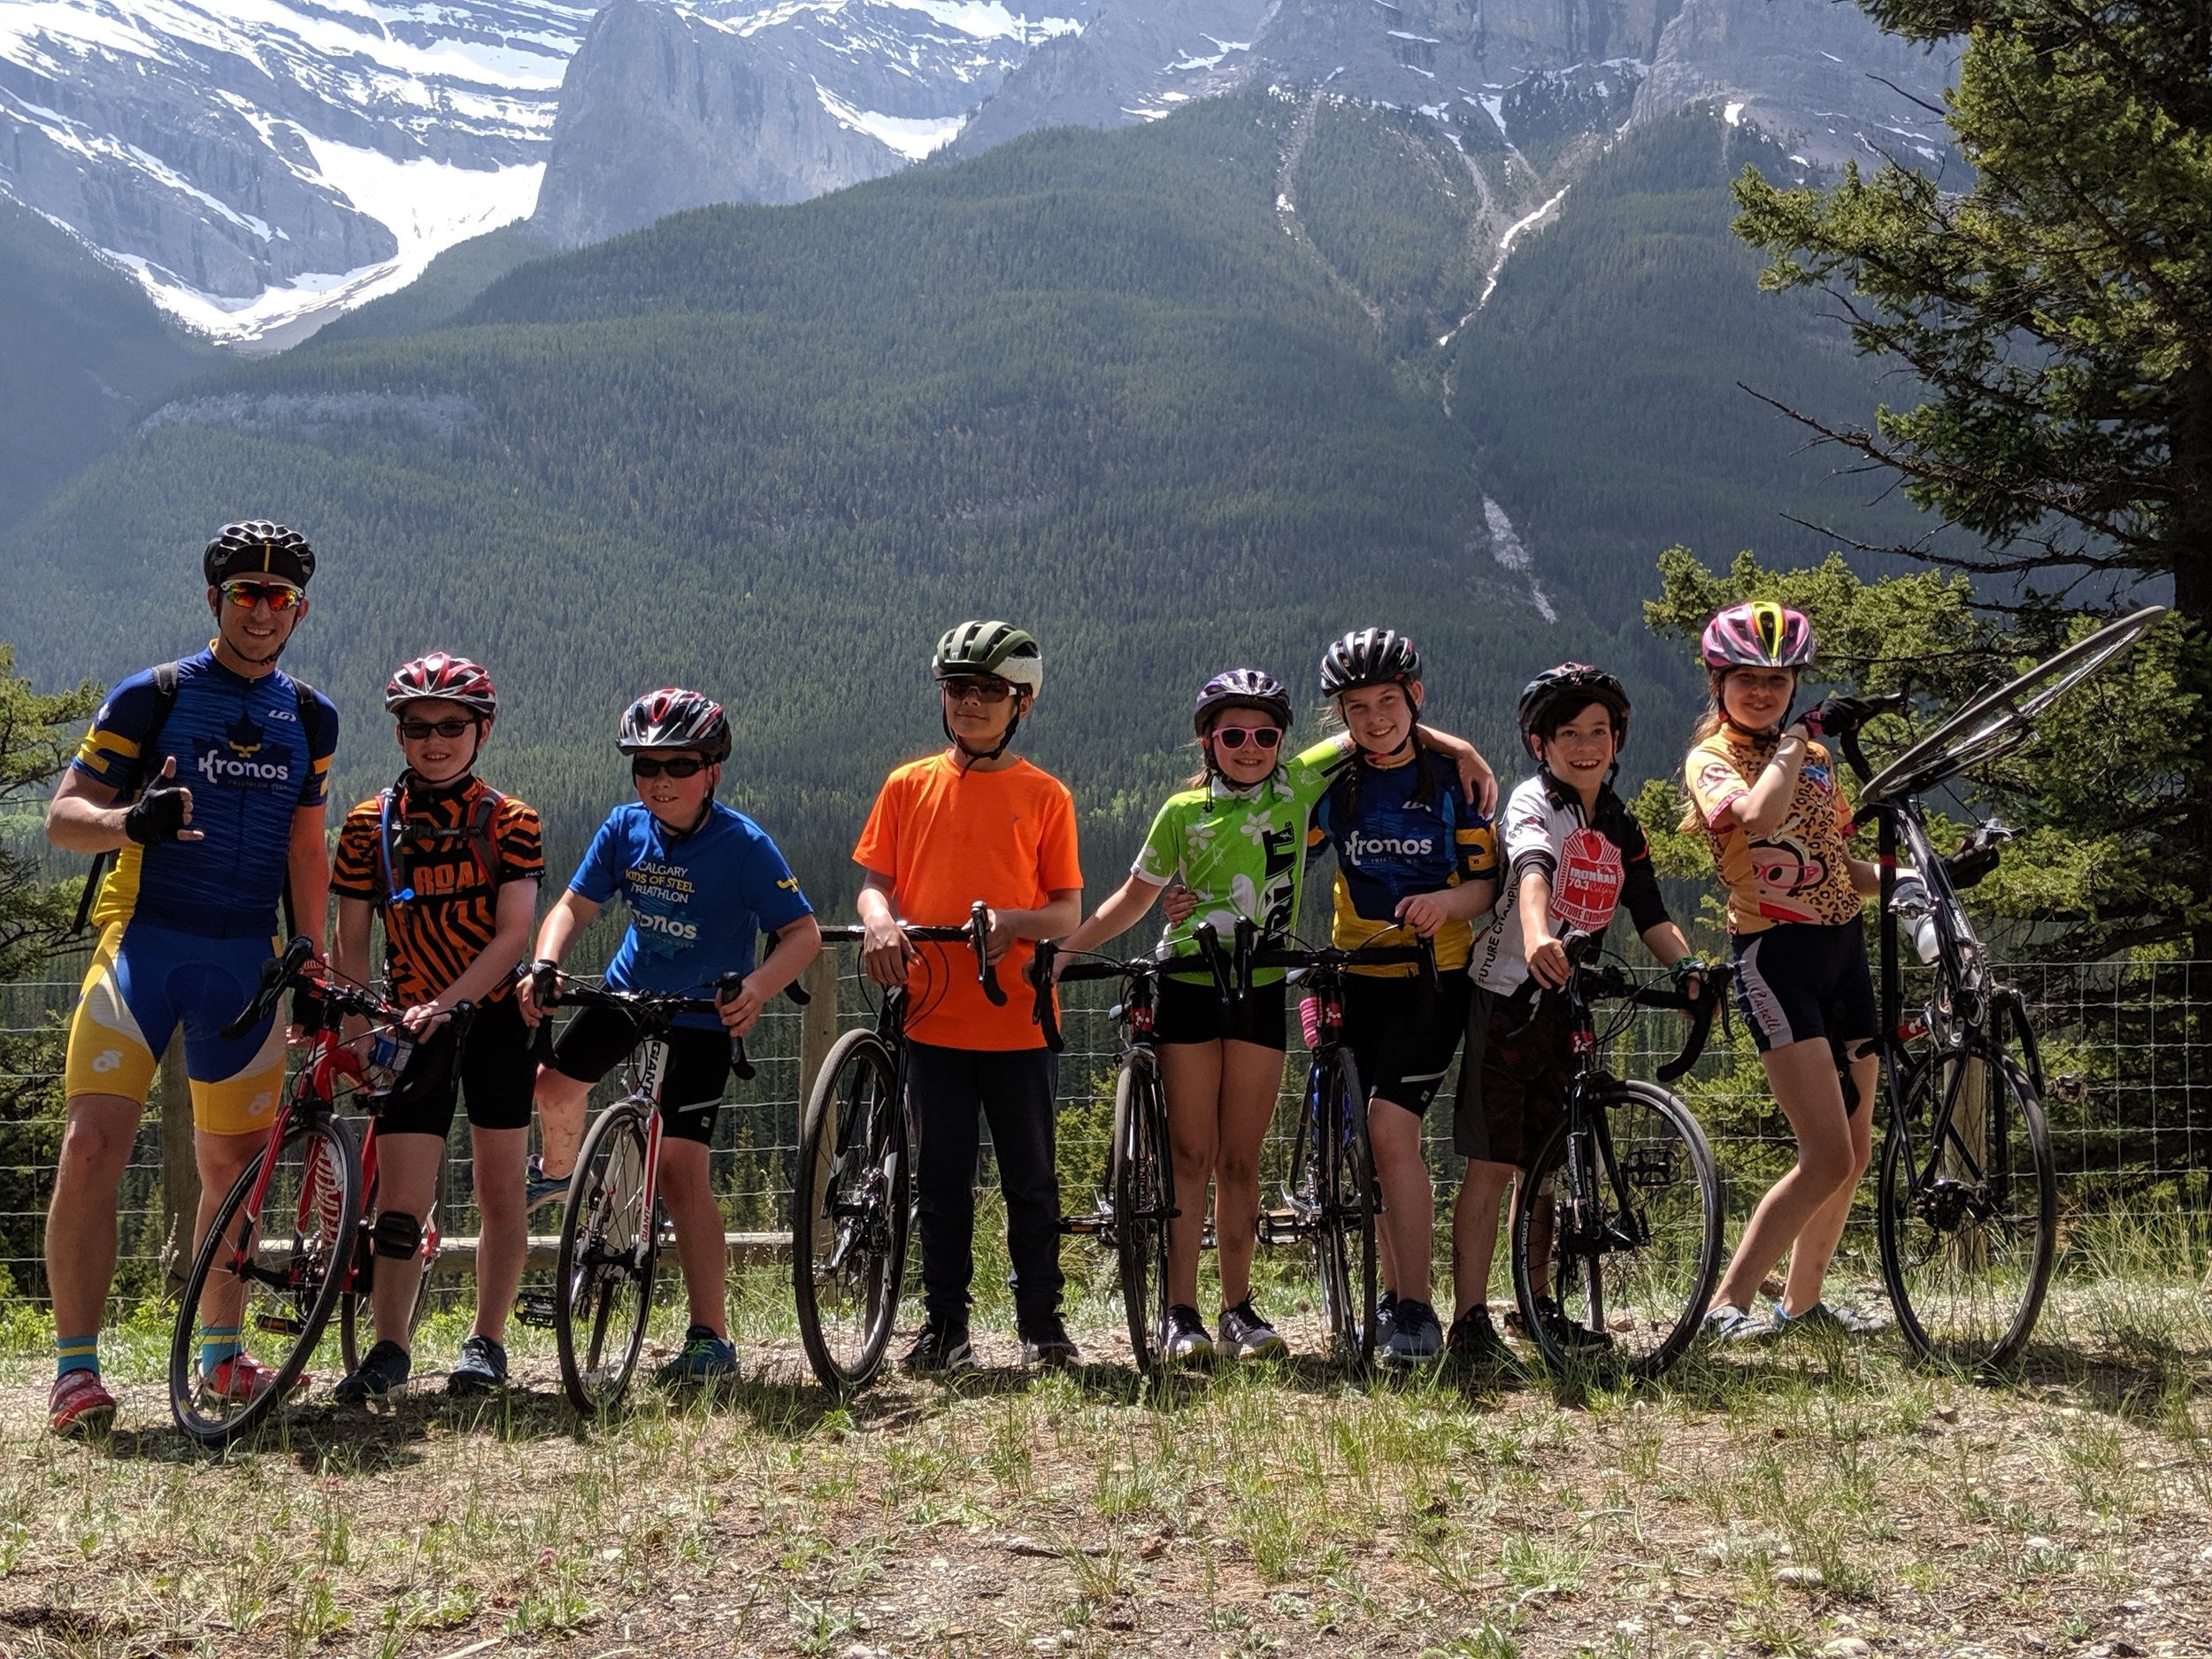 Long Bike Ride for our Youth Triathletes in Canmore and Banff